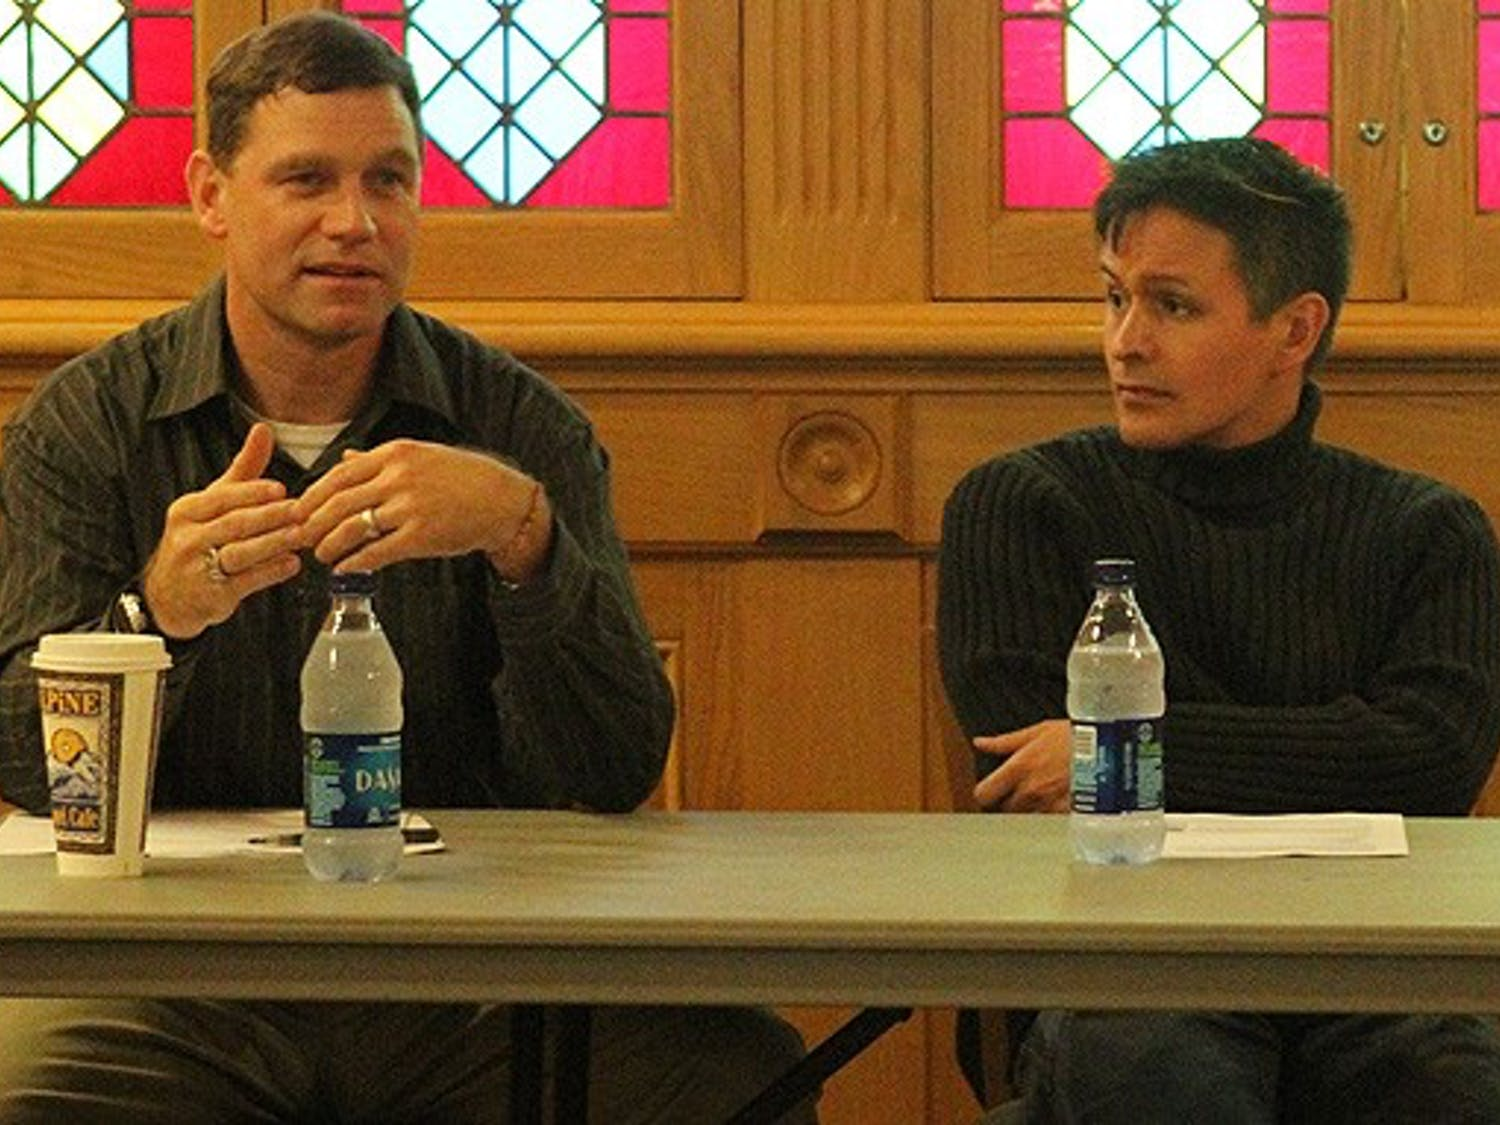 """Col. Kevin Colyer and Professor Sean Metzger participate in a panel discussion hosted by Duke Political Union, evaluating the consequences of the military's controversial """"don't ask, don't tell"""" policy."""